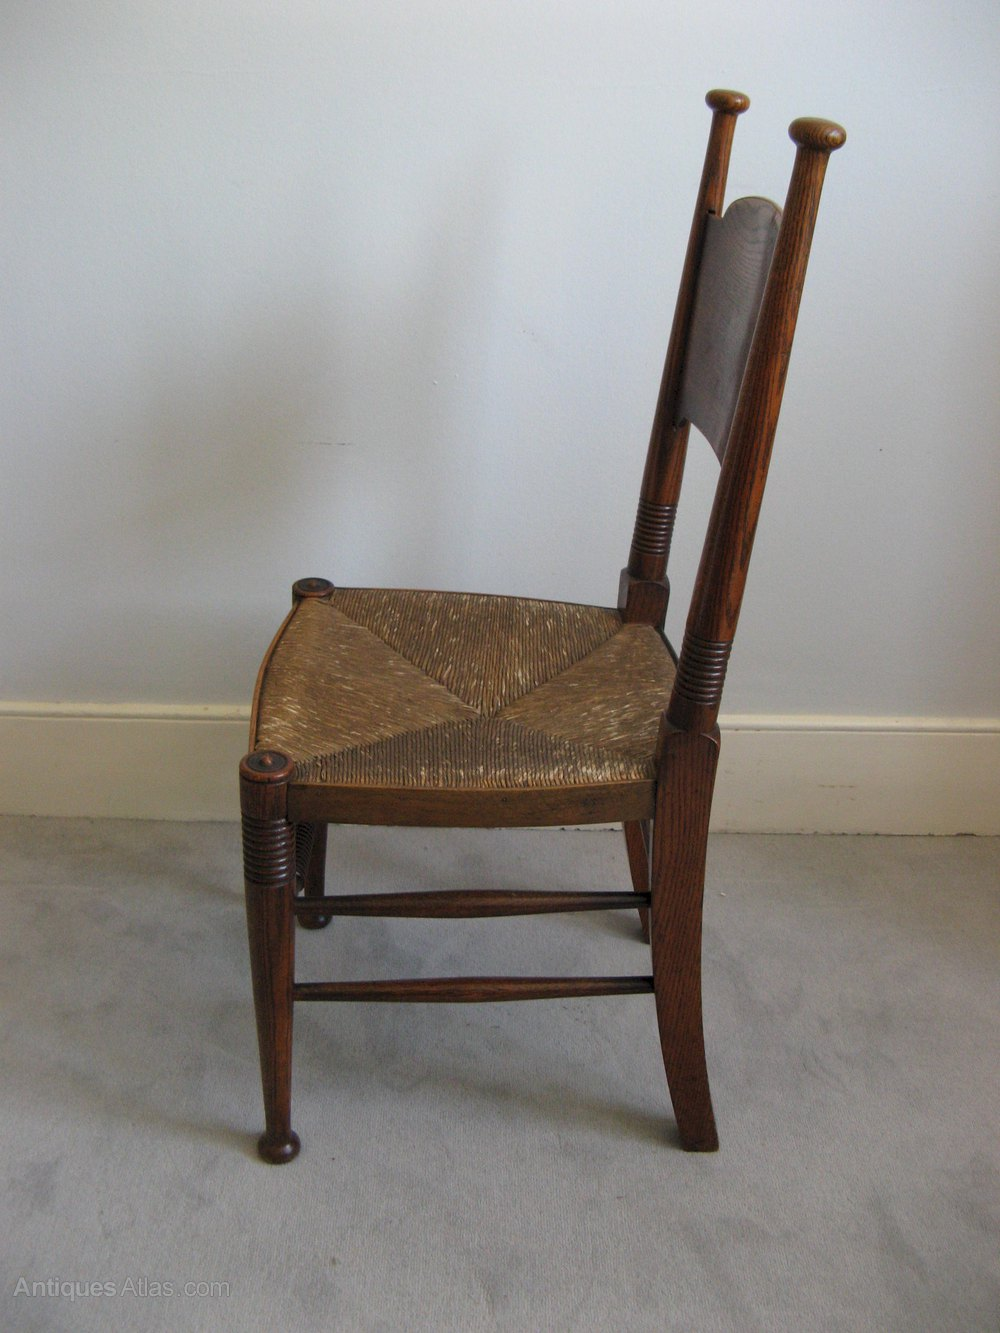 Classic Arts And Crafts Chairs William Birch Antiques